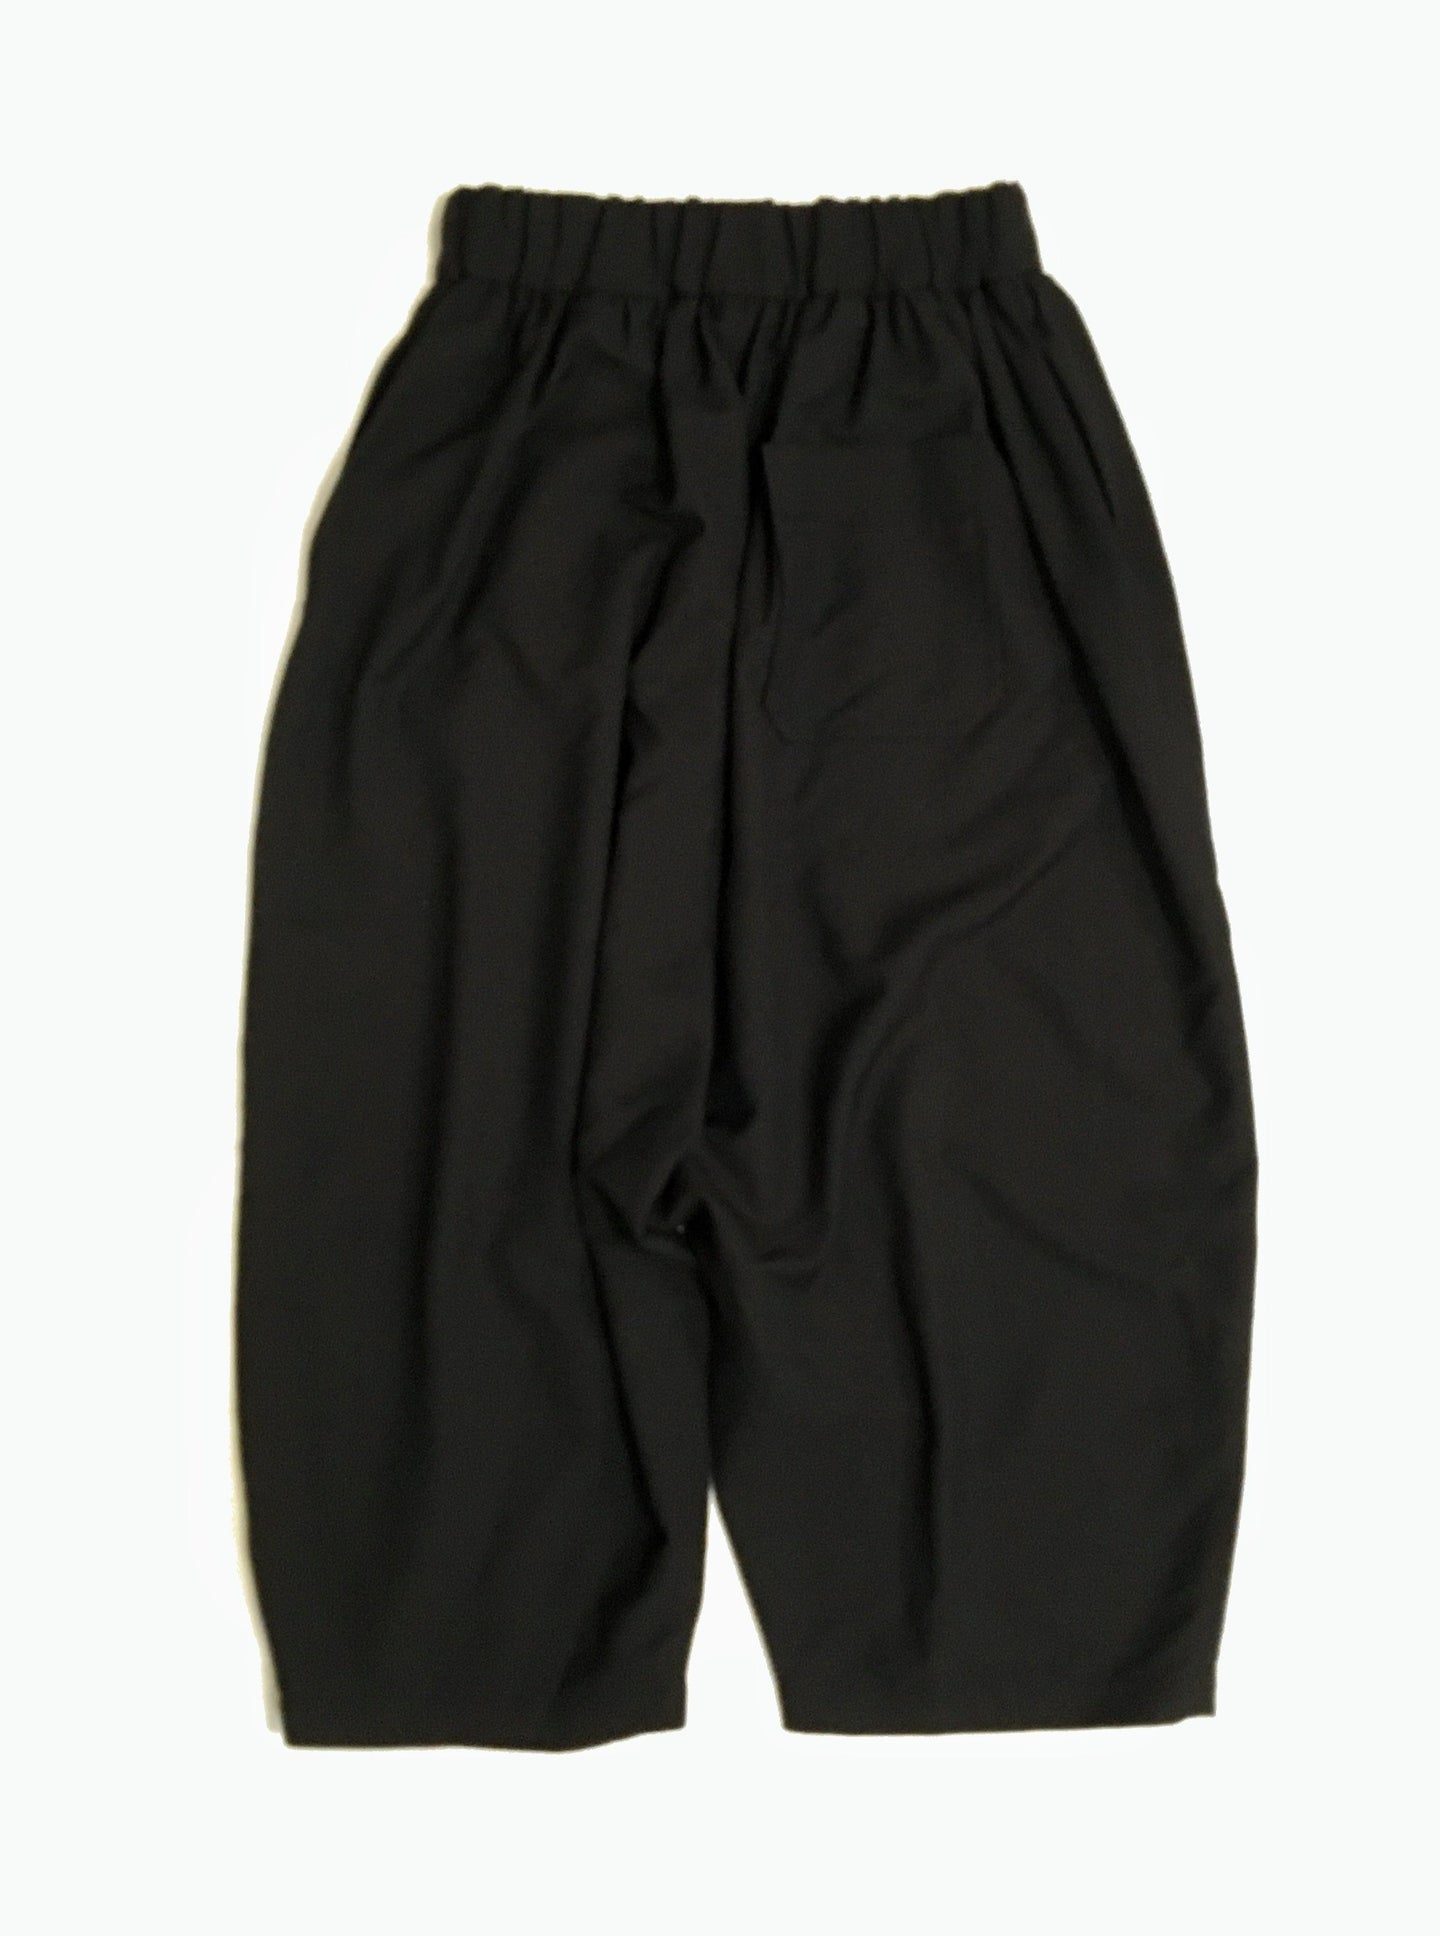 POLYESTER DOBBY BUTCHER CLOTH PANTS